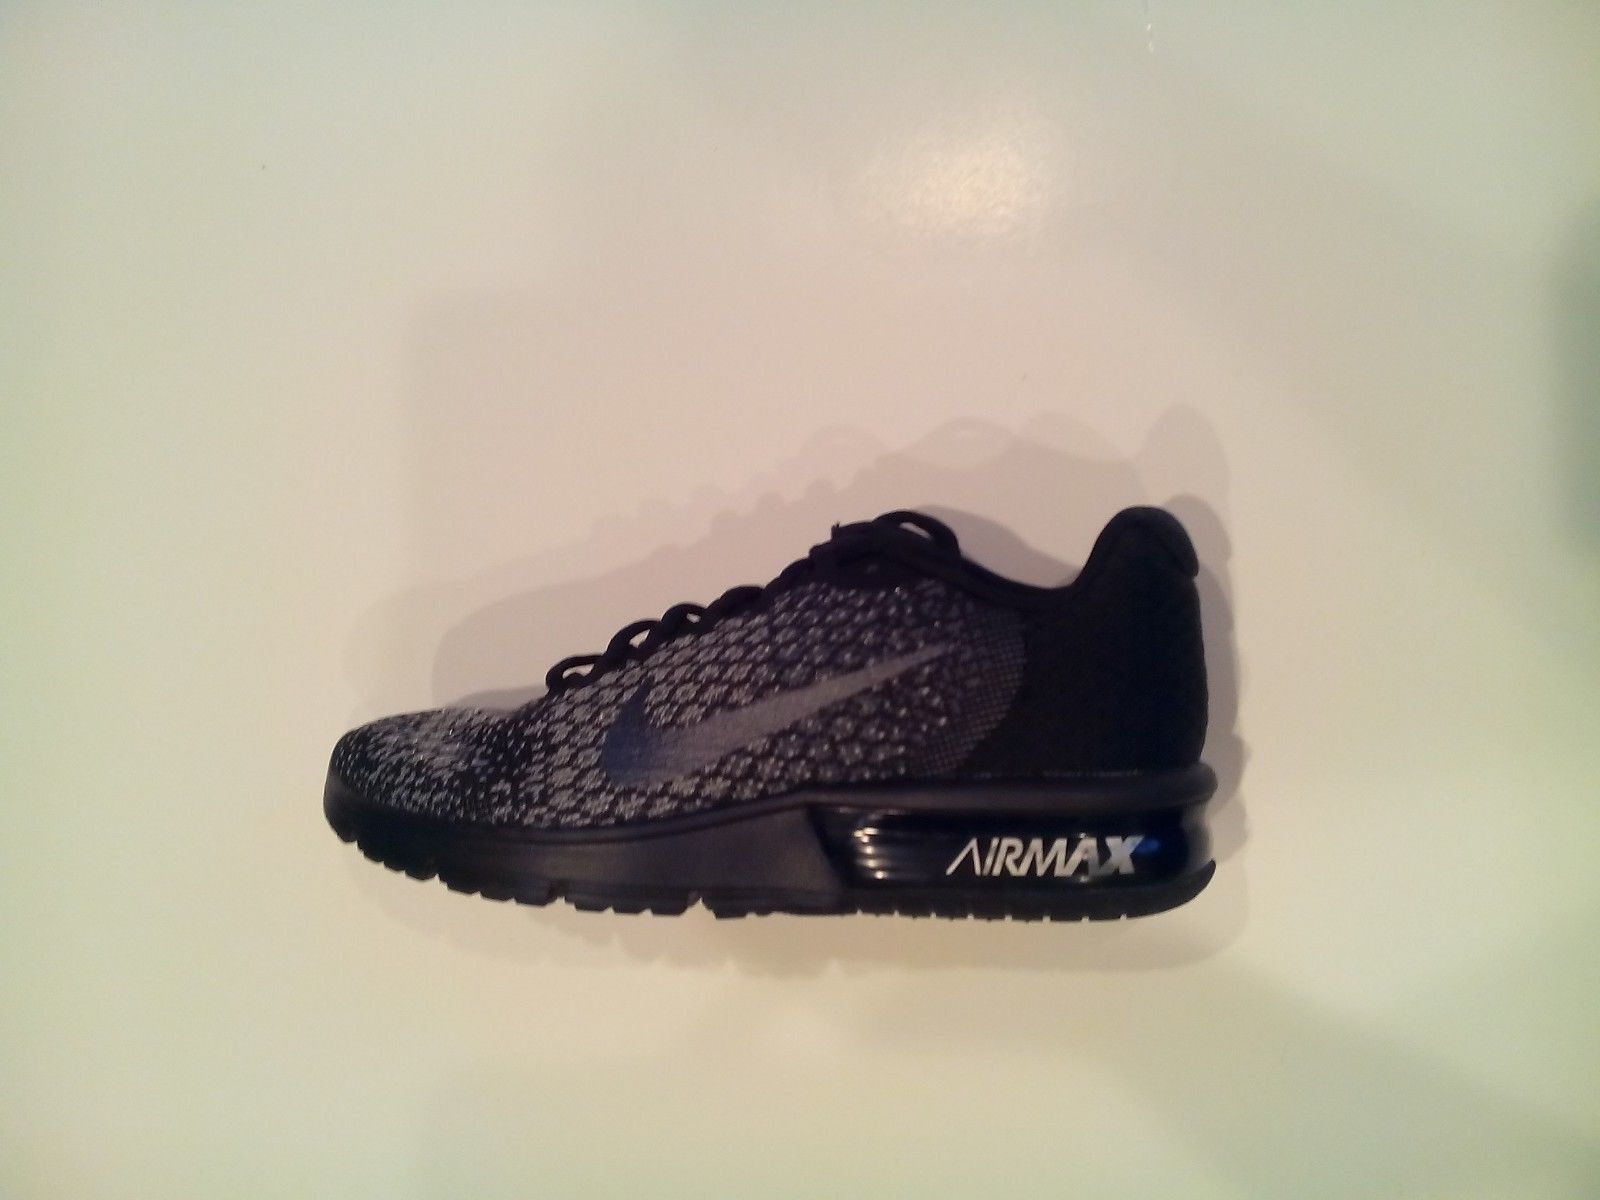 NIKE AIR MAX SEQUENT 852465 004 TG eur 39 US 8